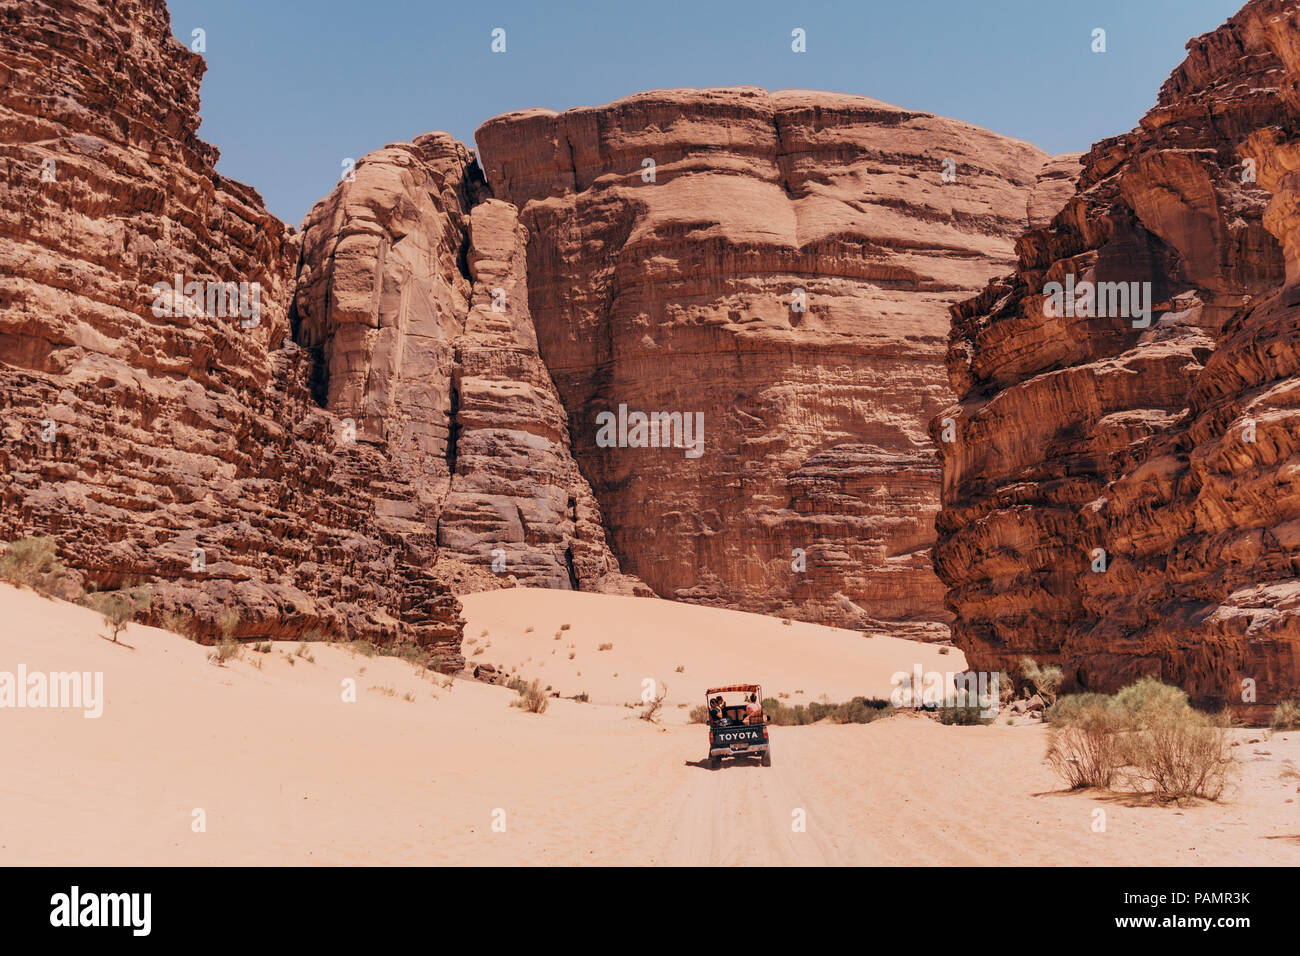 a Toyota pickup is dwarfed as it drives between the enormous rock formations in Wadi Rum National Park, Jordan - Stock Image